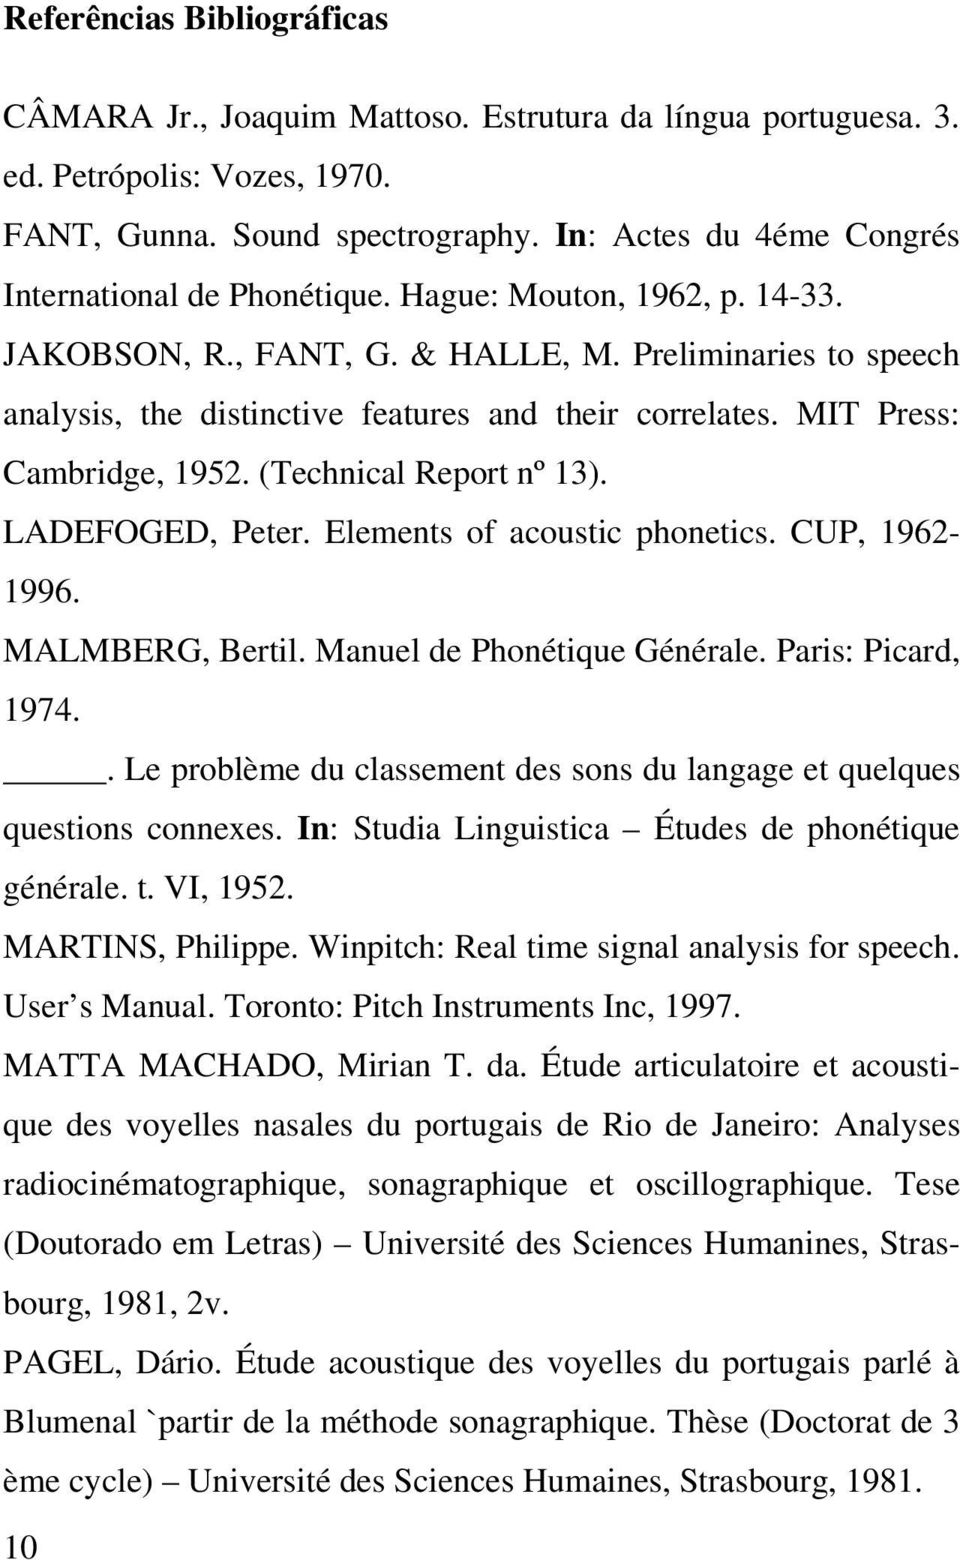 Preliminaries to speech analysis, the distinctive features and their correlates. MIT Press: Cambridge, 1952. (Technical Report nº 13). LADEFOGED, Peter. Elements of acoustic phonetics. CUP, 1962-1996.